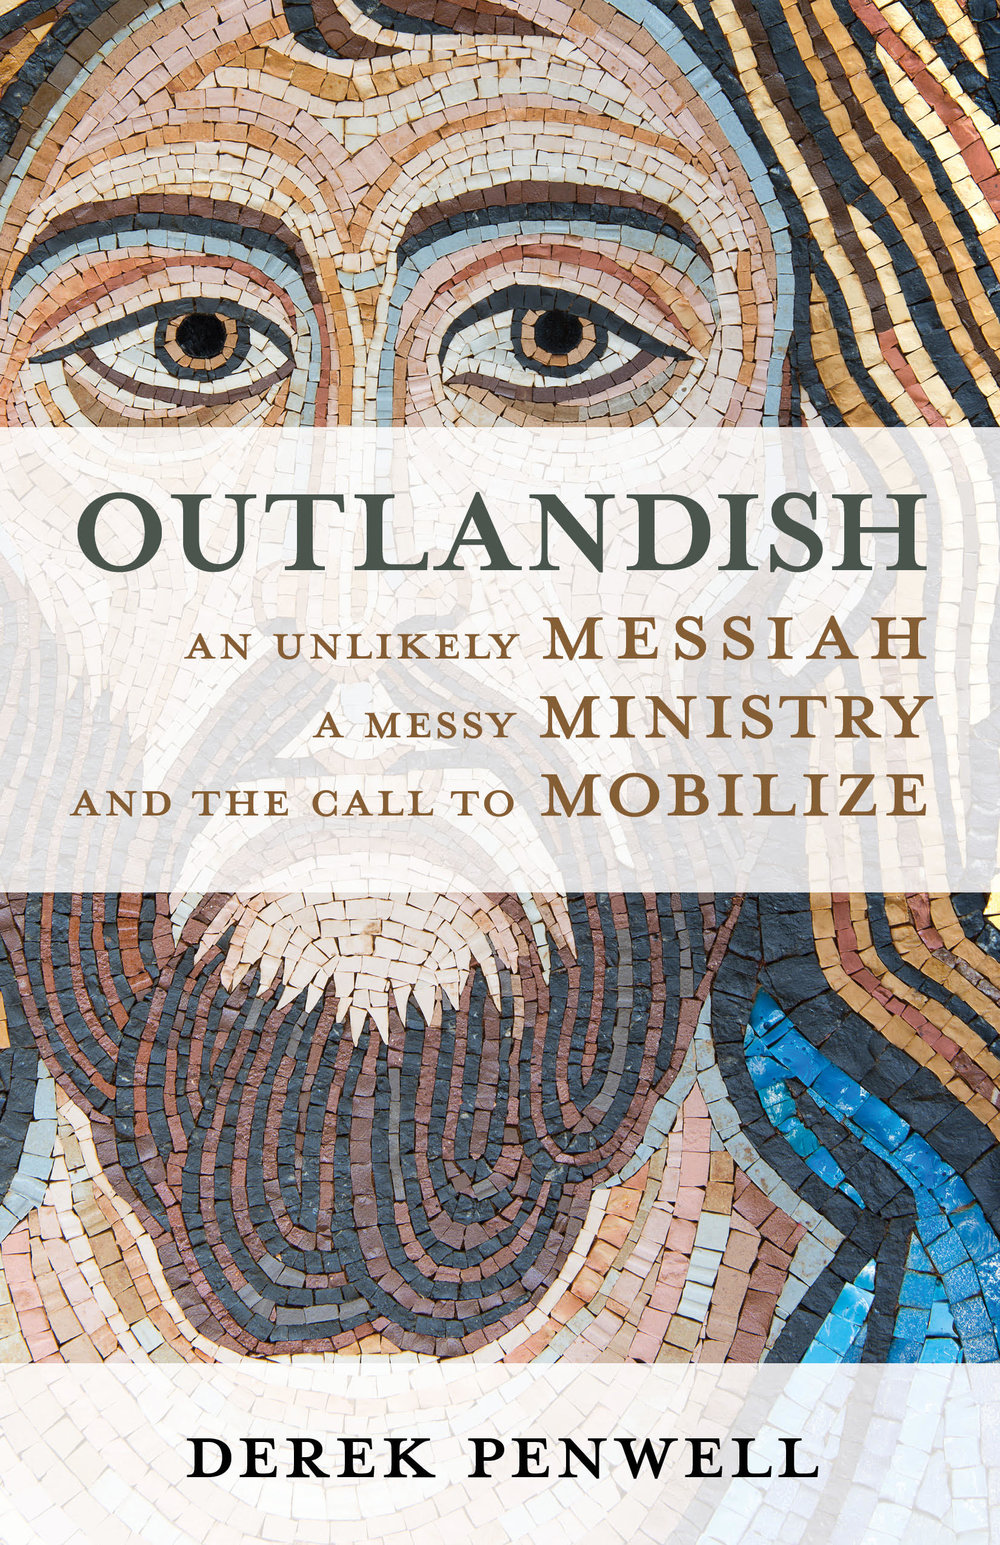 Outlandish final book cover (large file).jpg